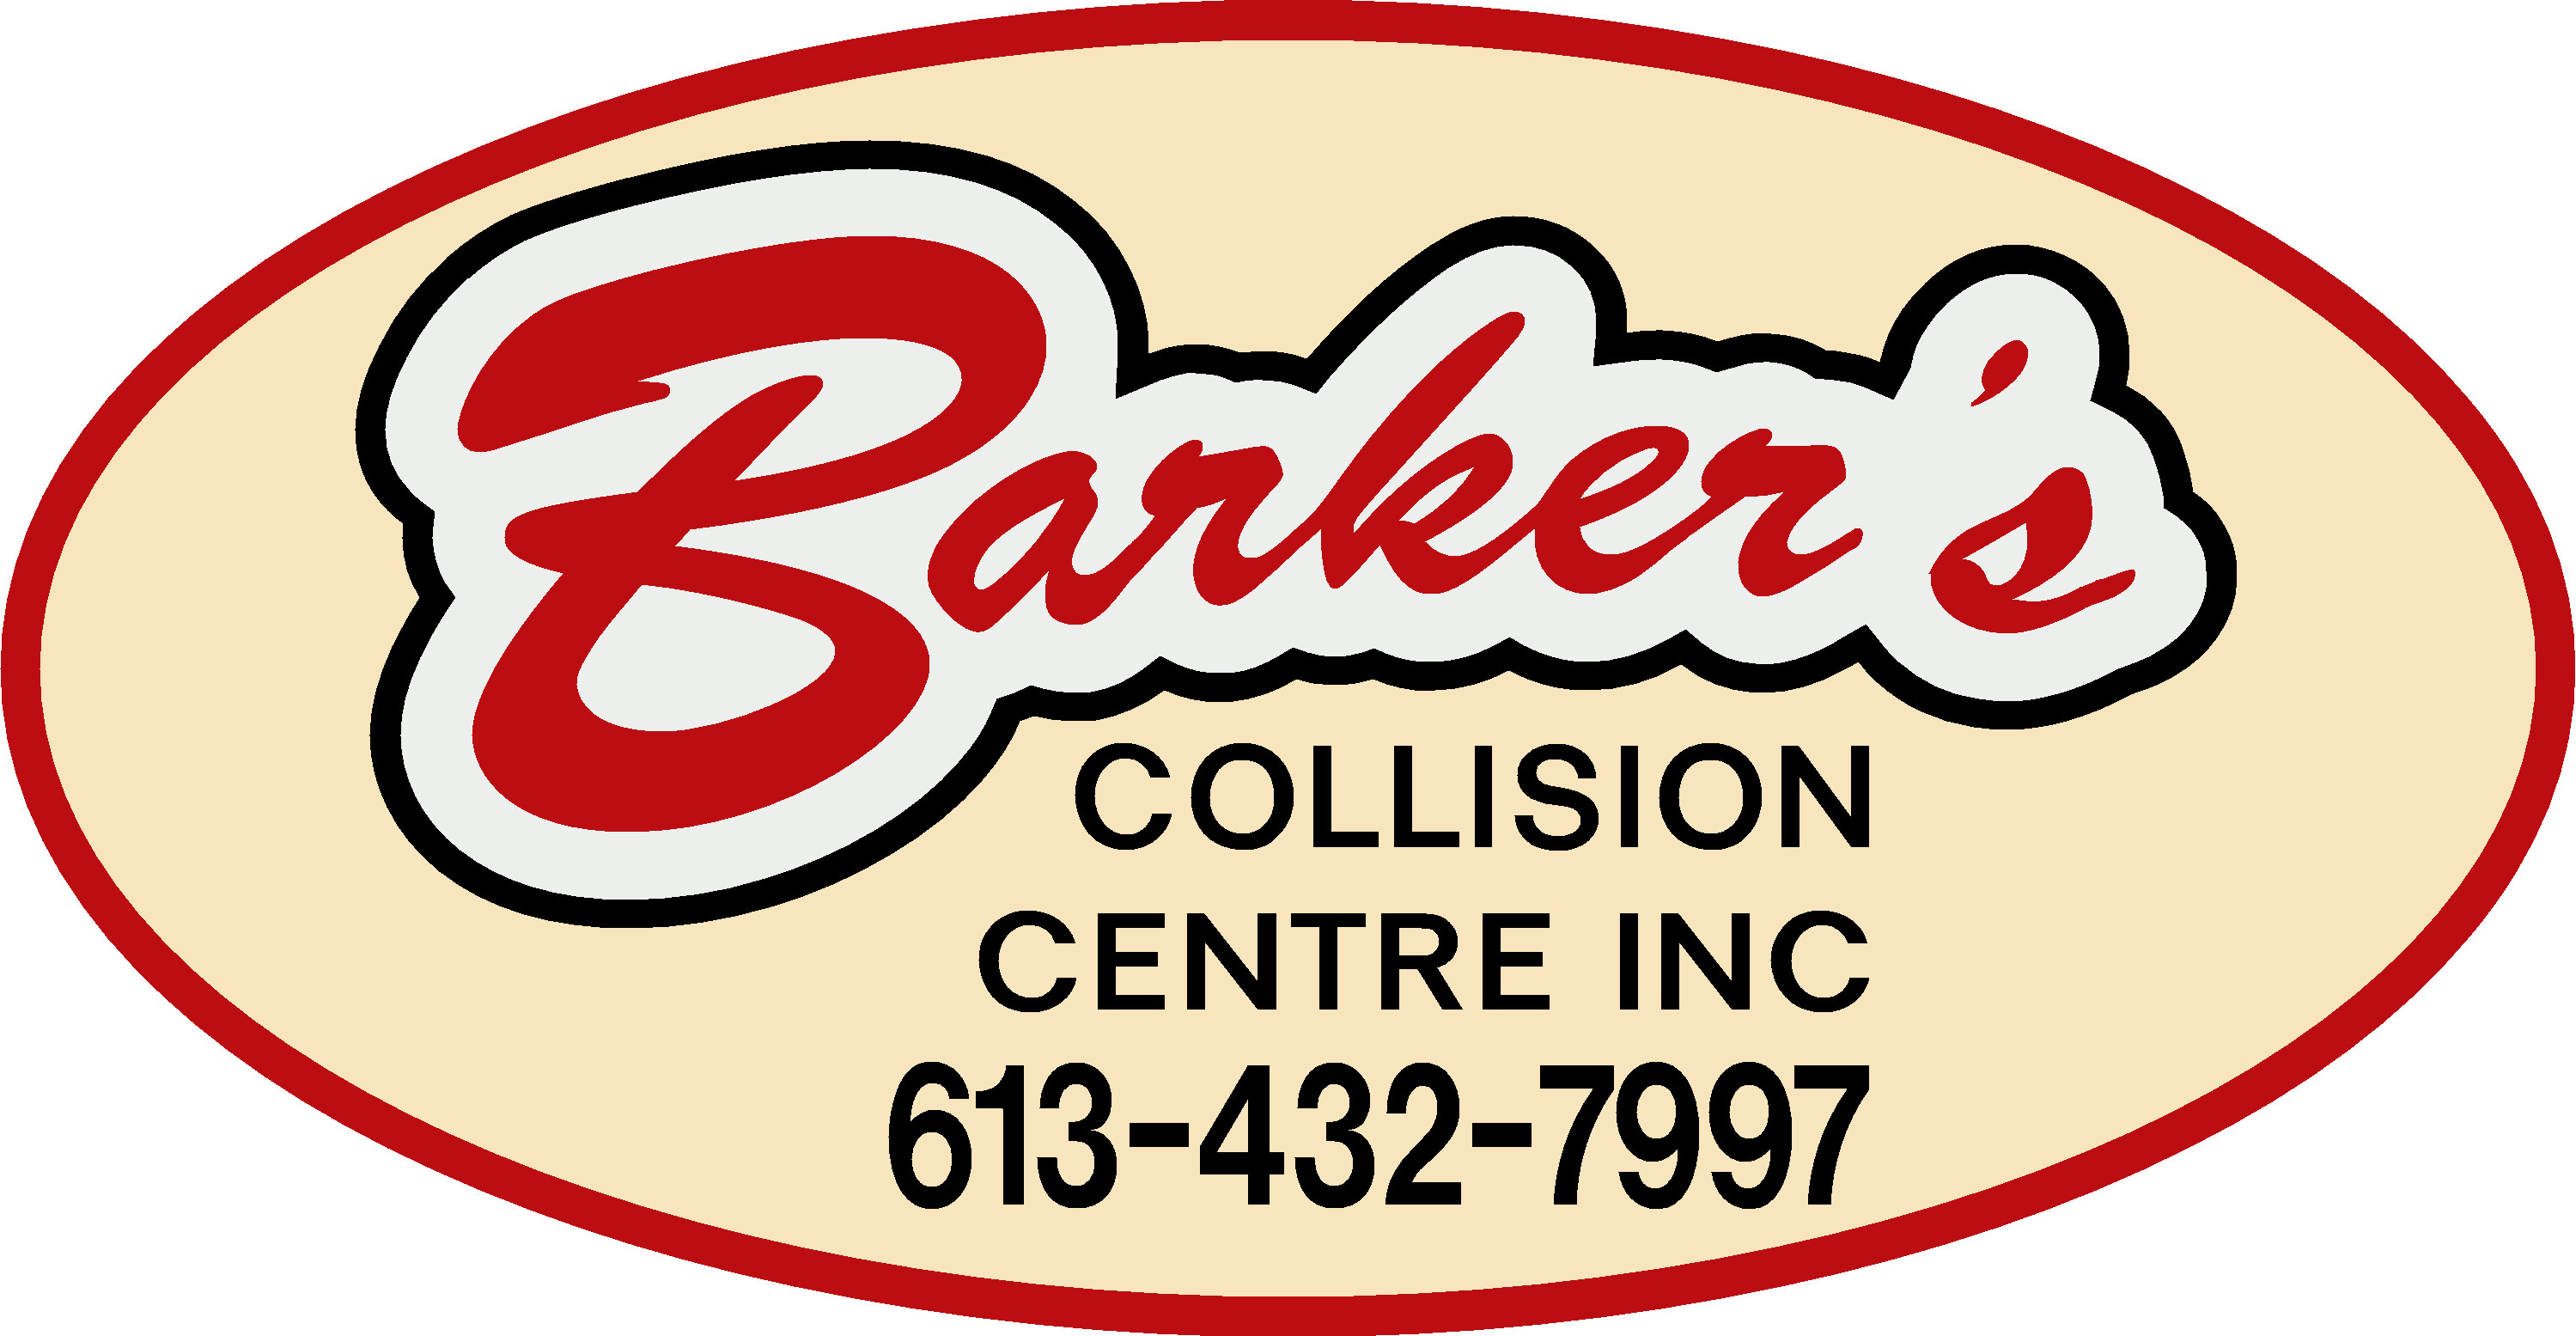 Barker's Collision Centre Inc.